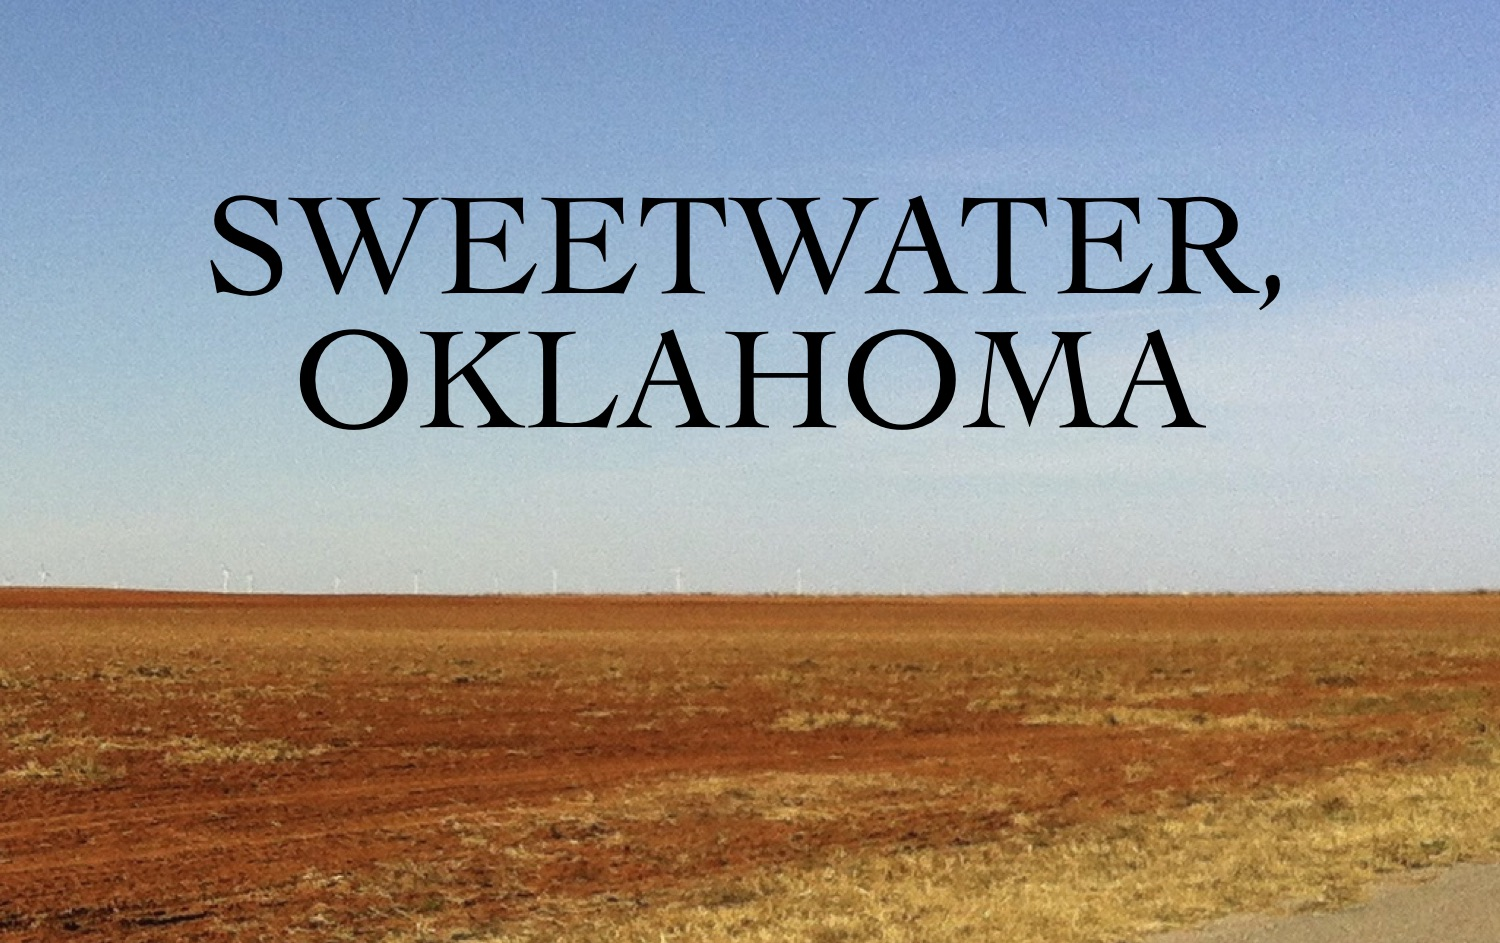 """Sweetwater, Oklahoma"""